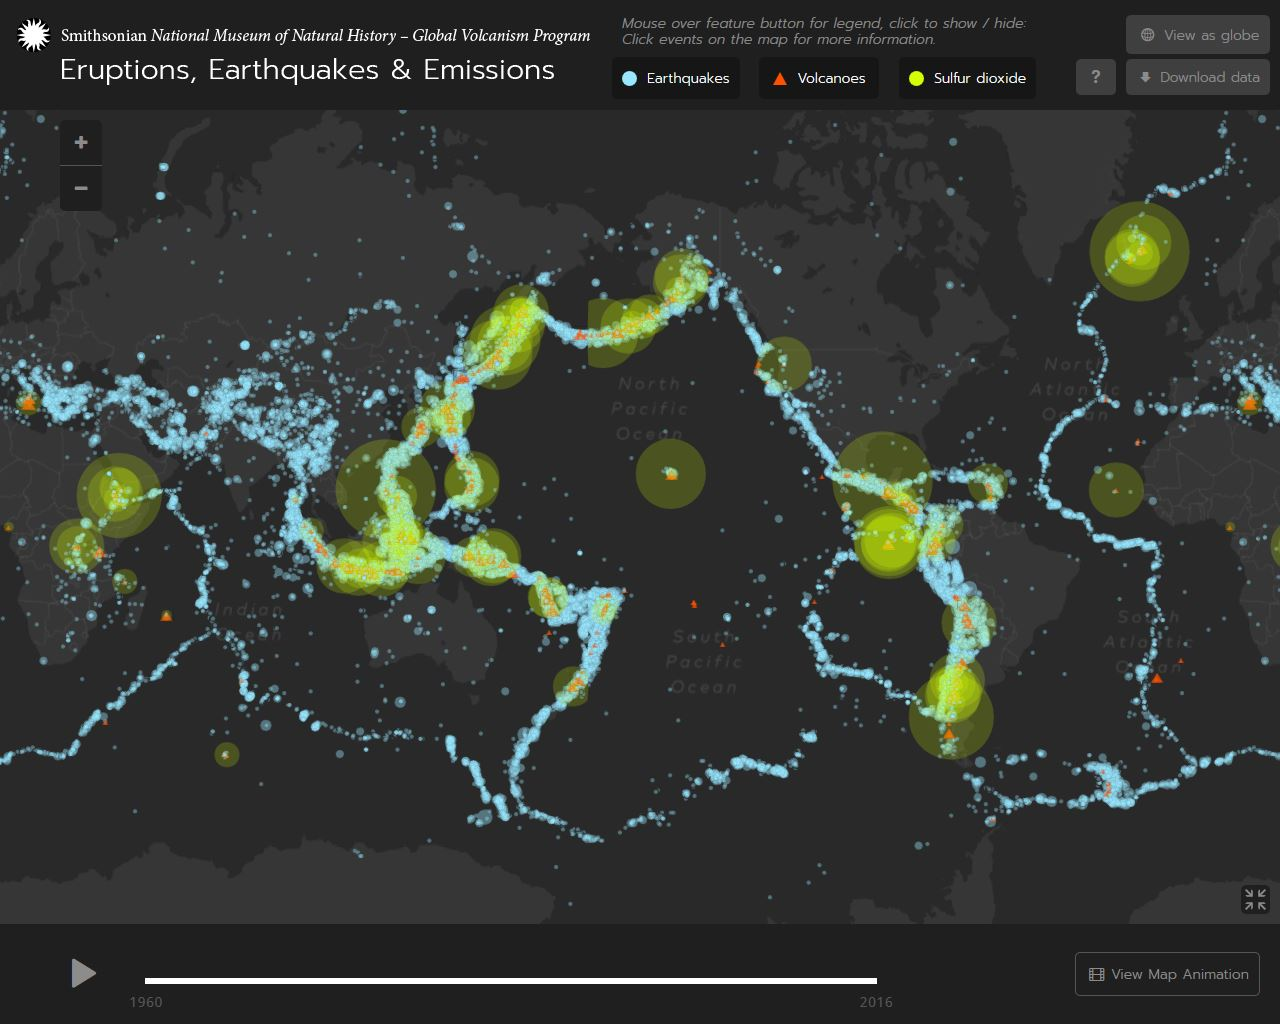 Global Volcanism Program Eruptions Earthquakes Emissions